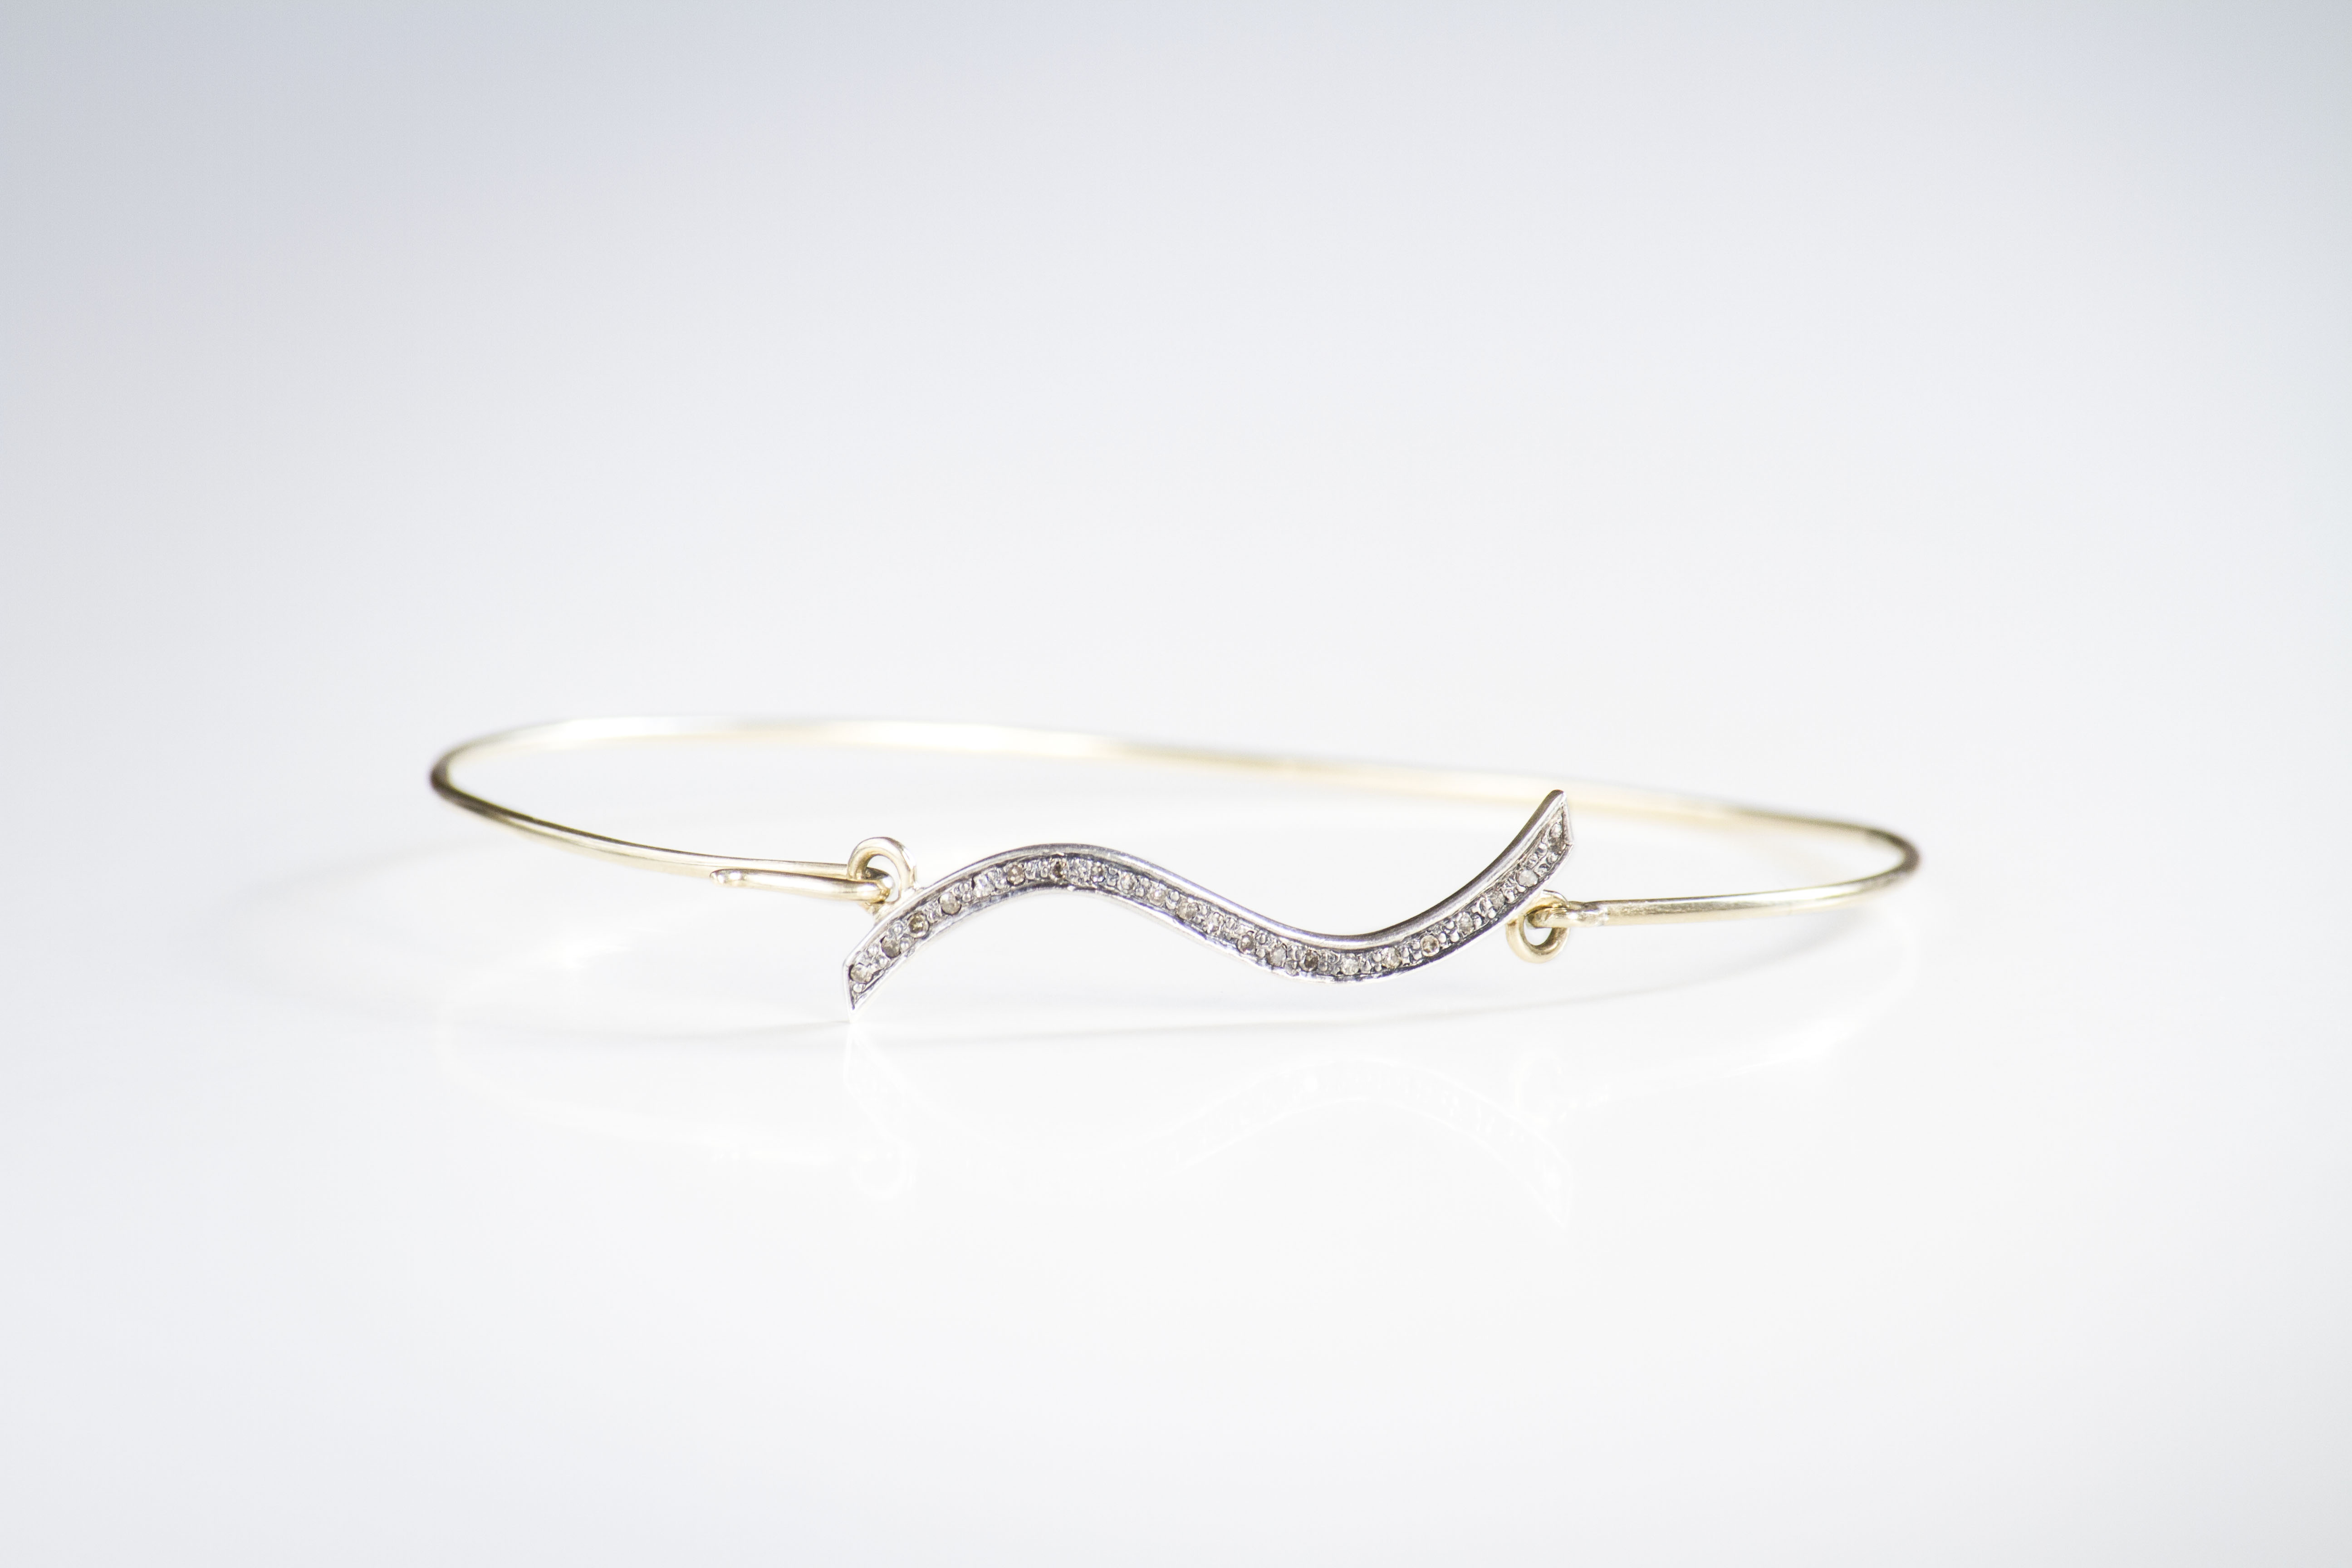 wave bracelet Delicate bangle in 14k yellow gold with diamond pave